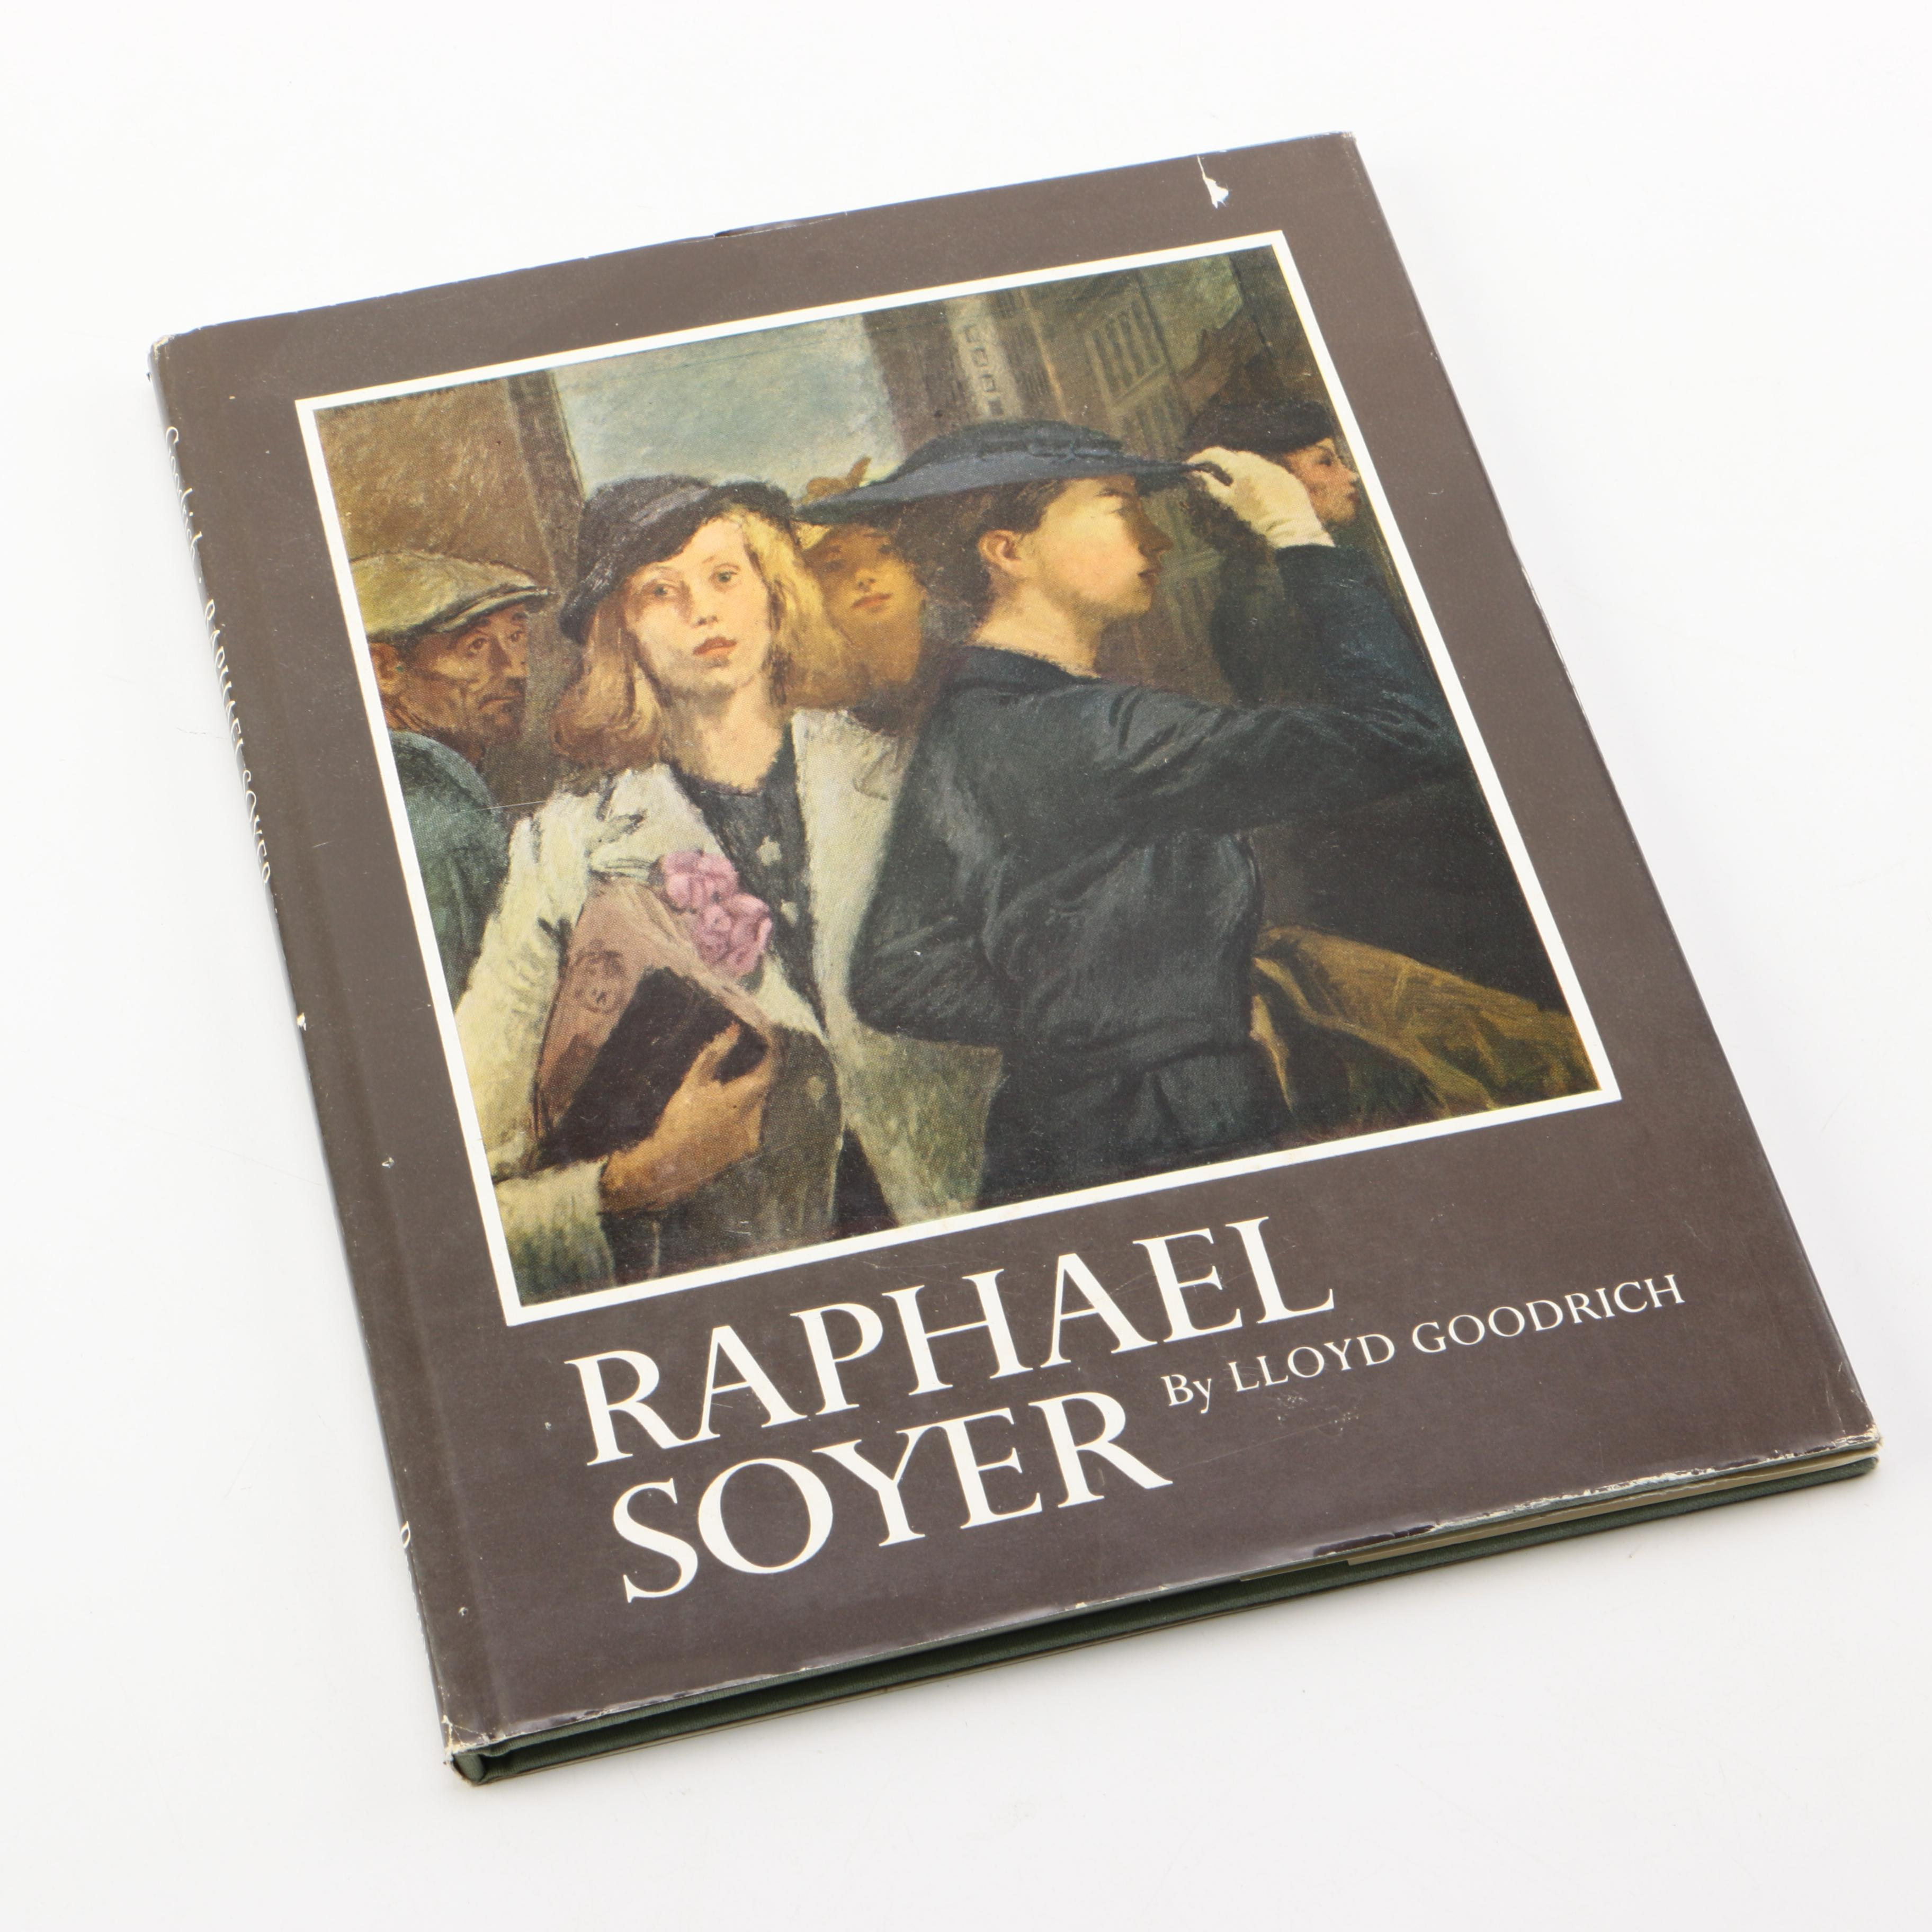 "1967 Signed ""Raphael Soyer"" by Lloyd Goodrich"